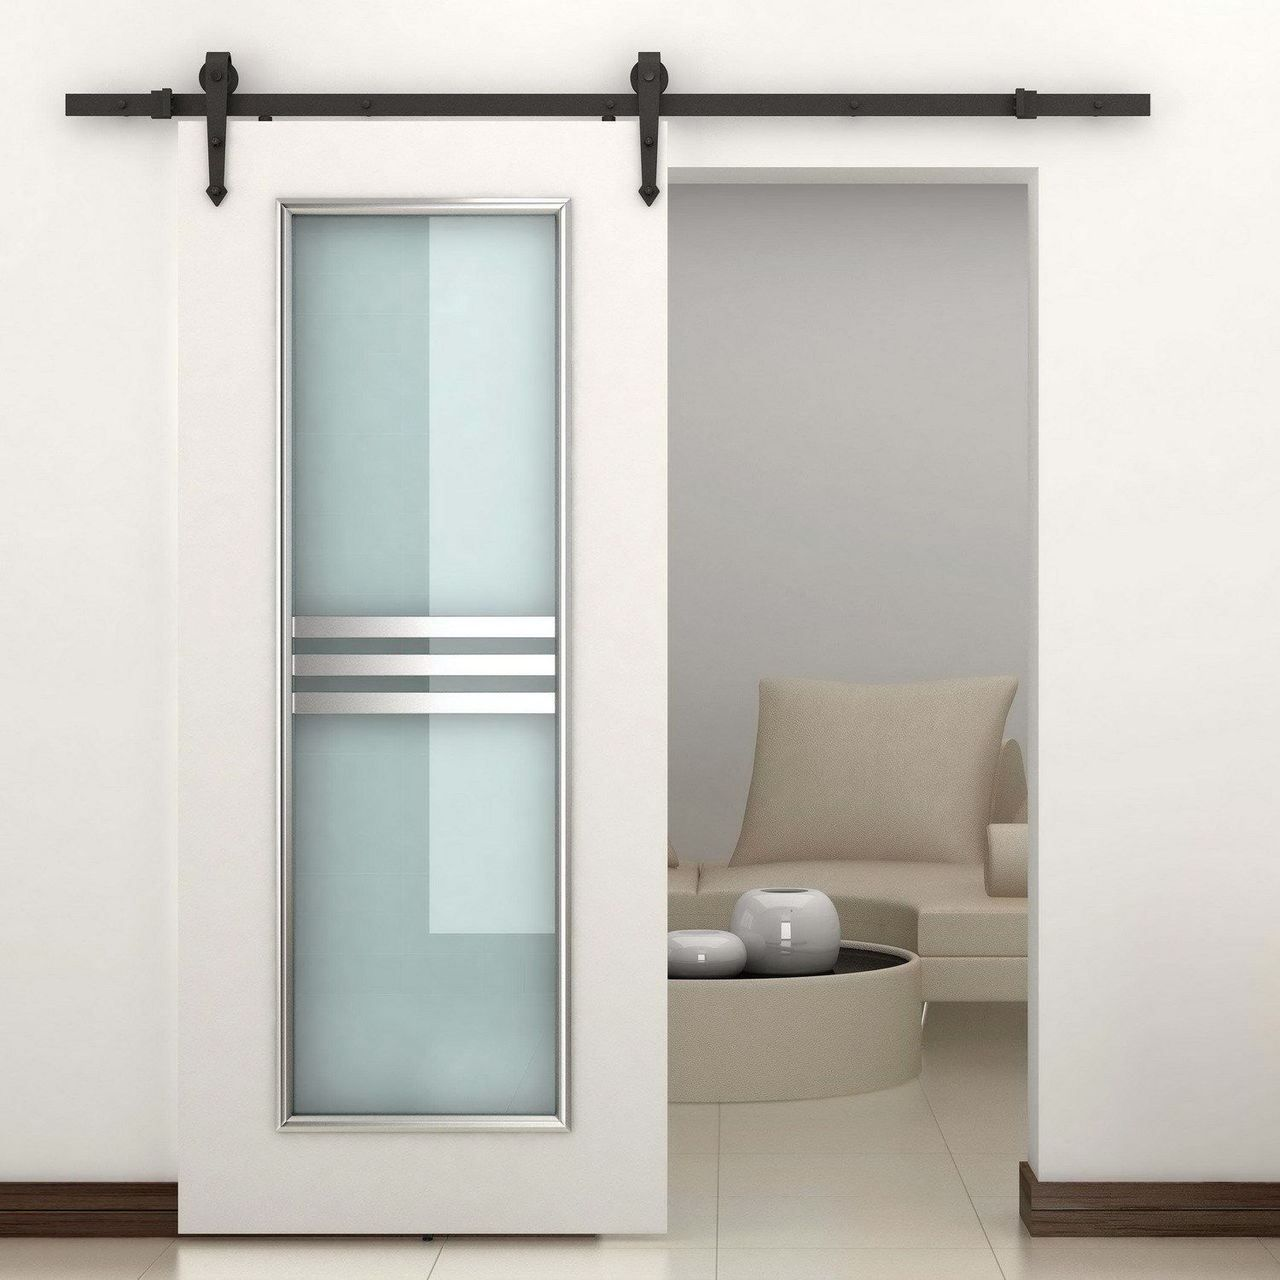 Le Meilleur We Offer Many Types Of Sliding Door Hardware Rolling Ce Mois Ci